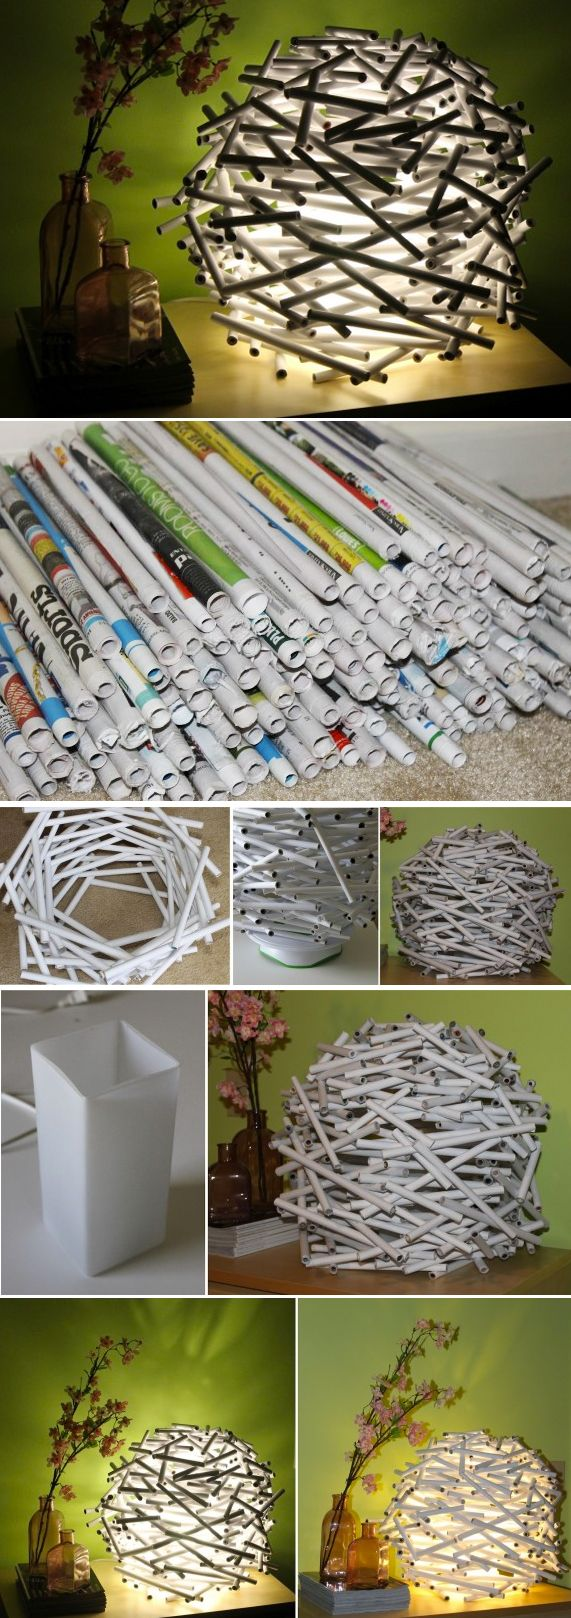 do something like this except not as a lamp but as a nest